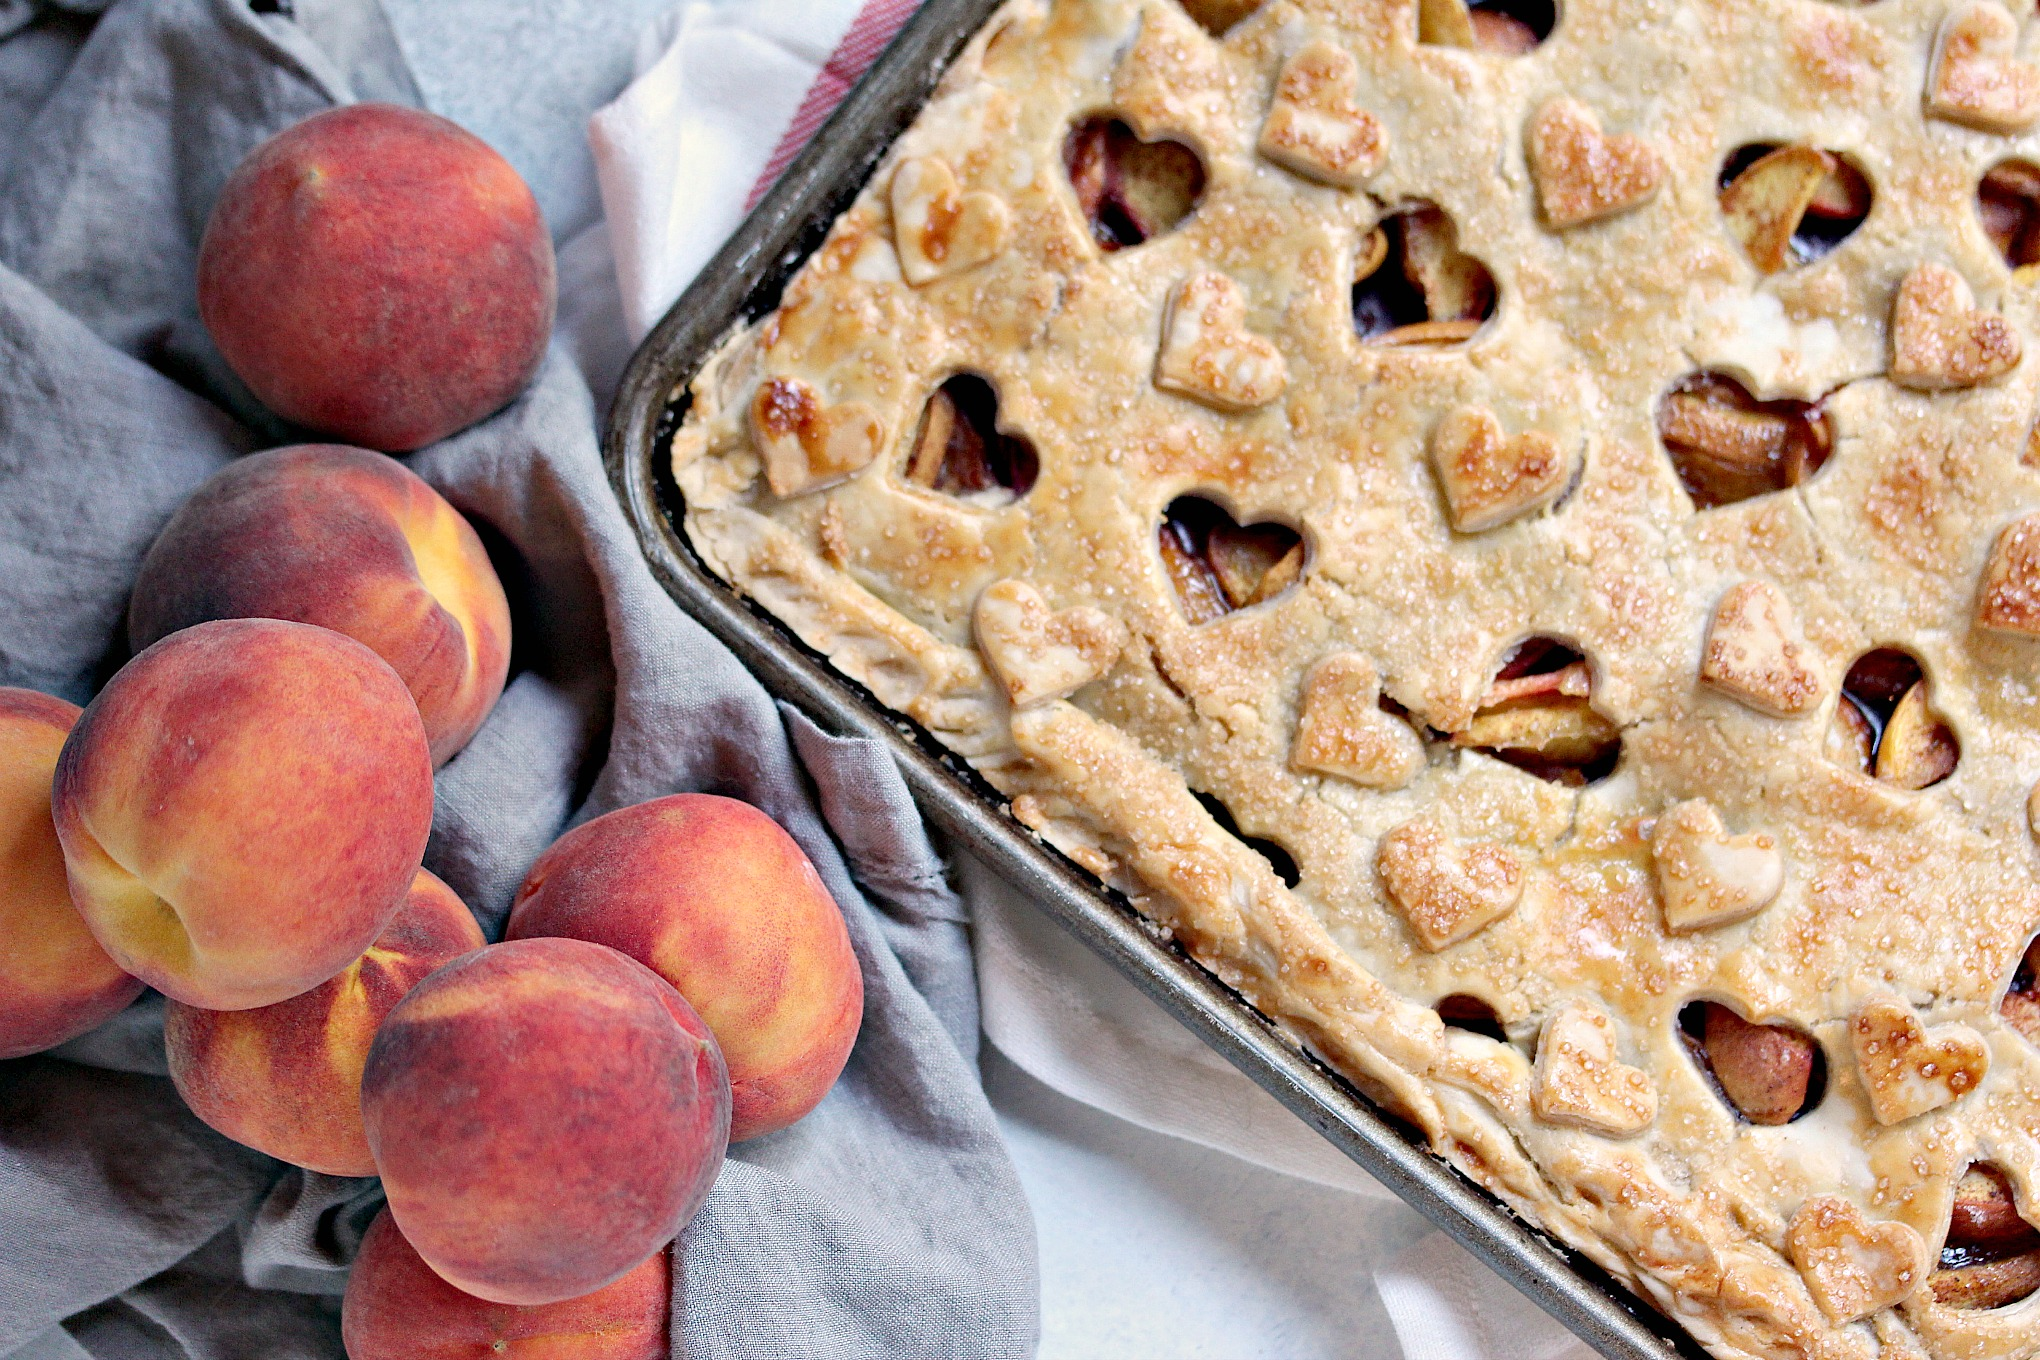 peaches on a table with a baked Rustic Peach Slab Pie next to it